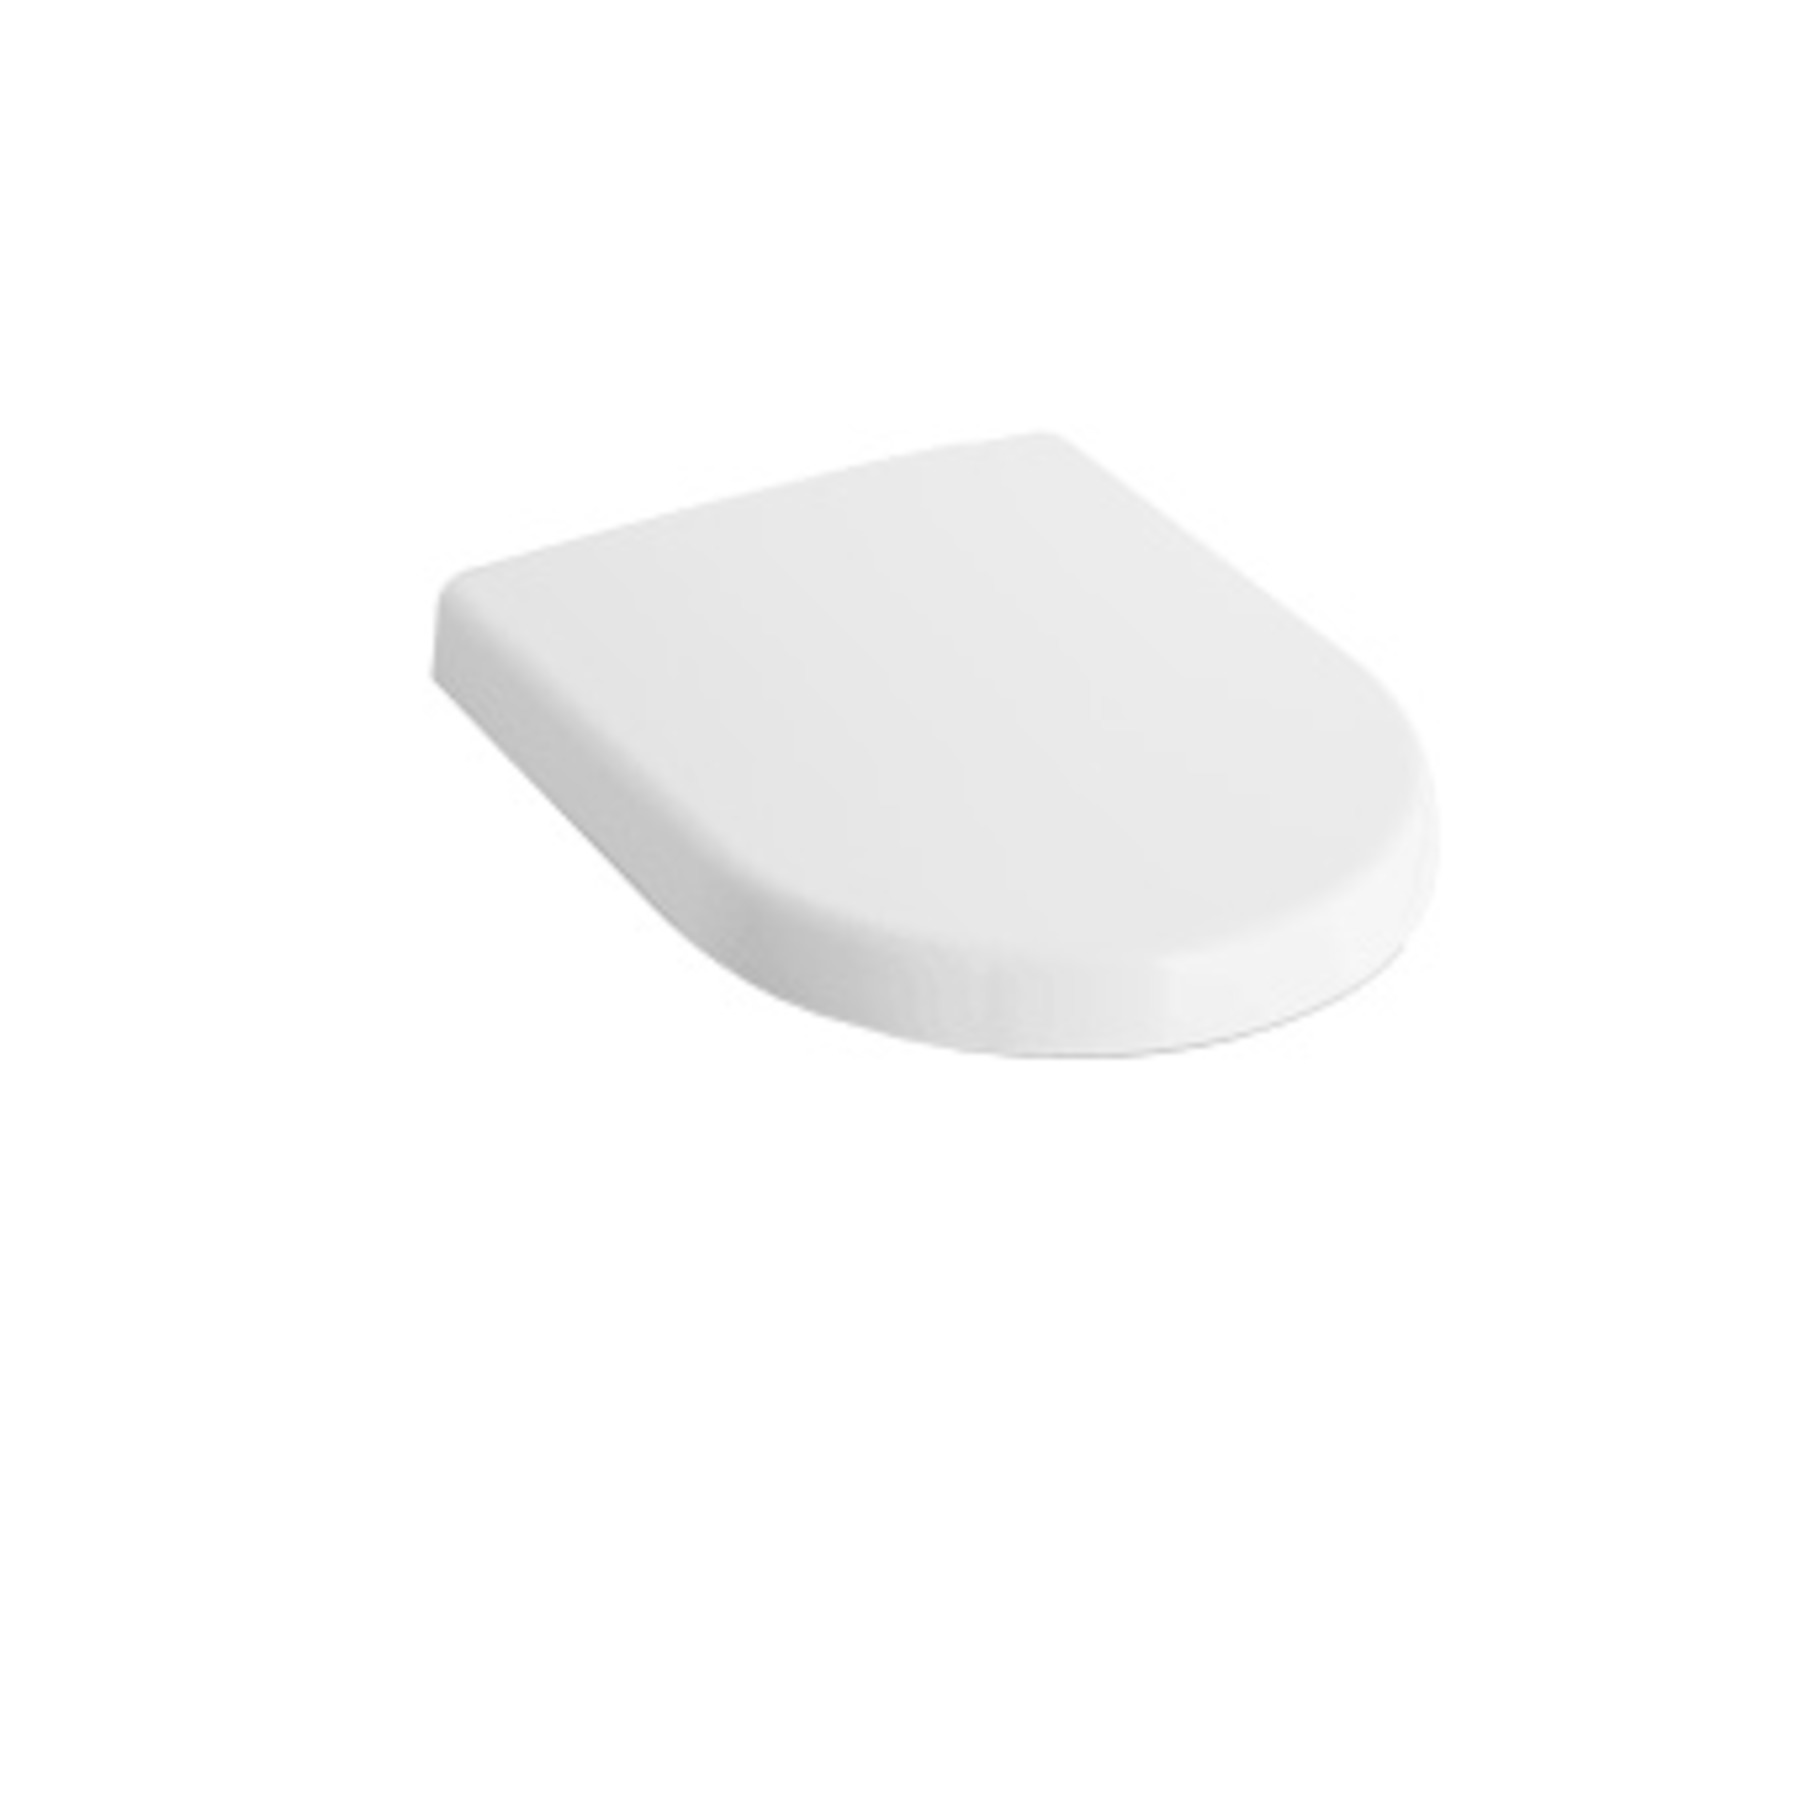 Villeroy en Boch Subway 2.0 (voorheen Subway) 2.0 closetzitting met quick release pergamon